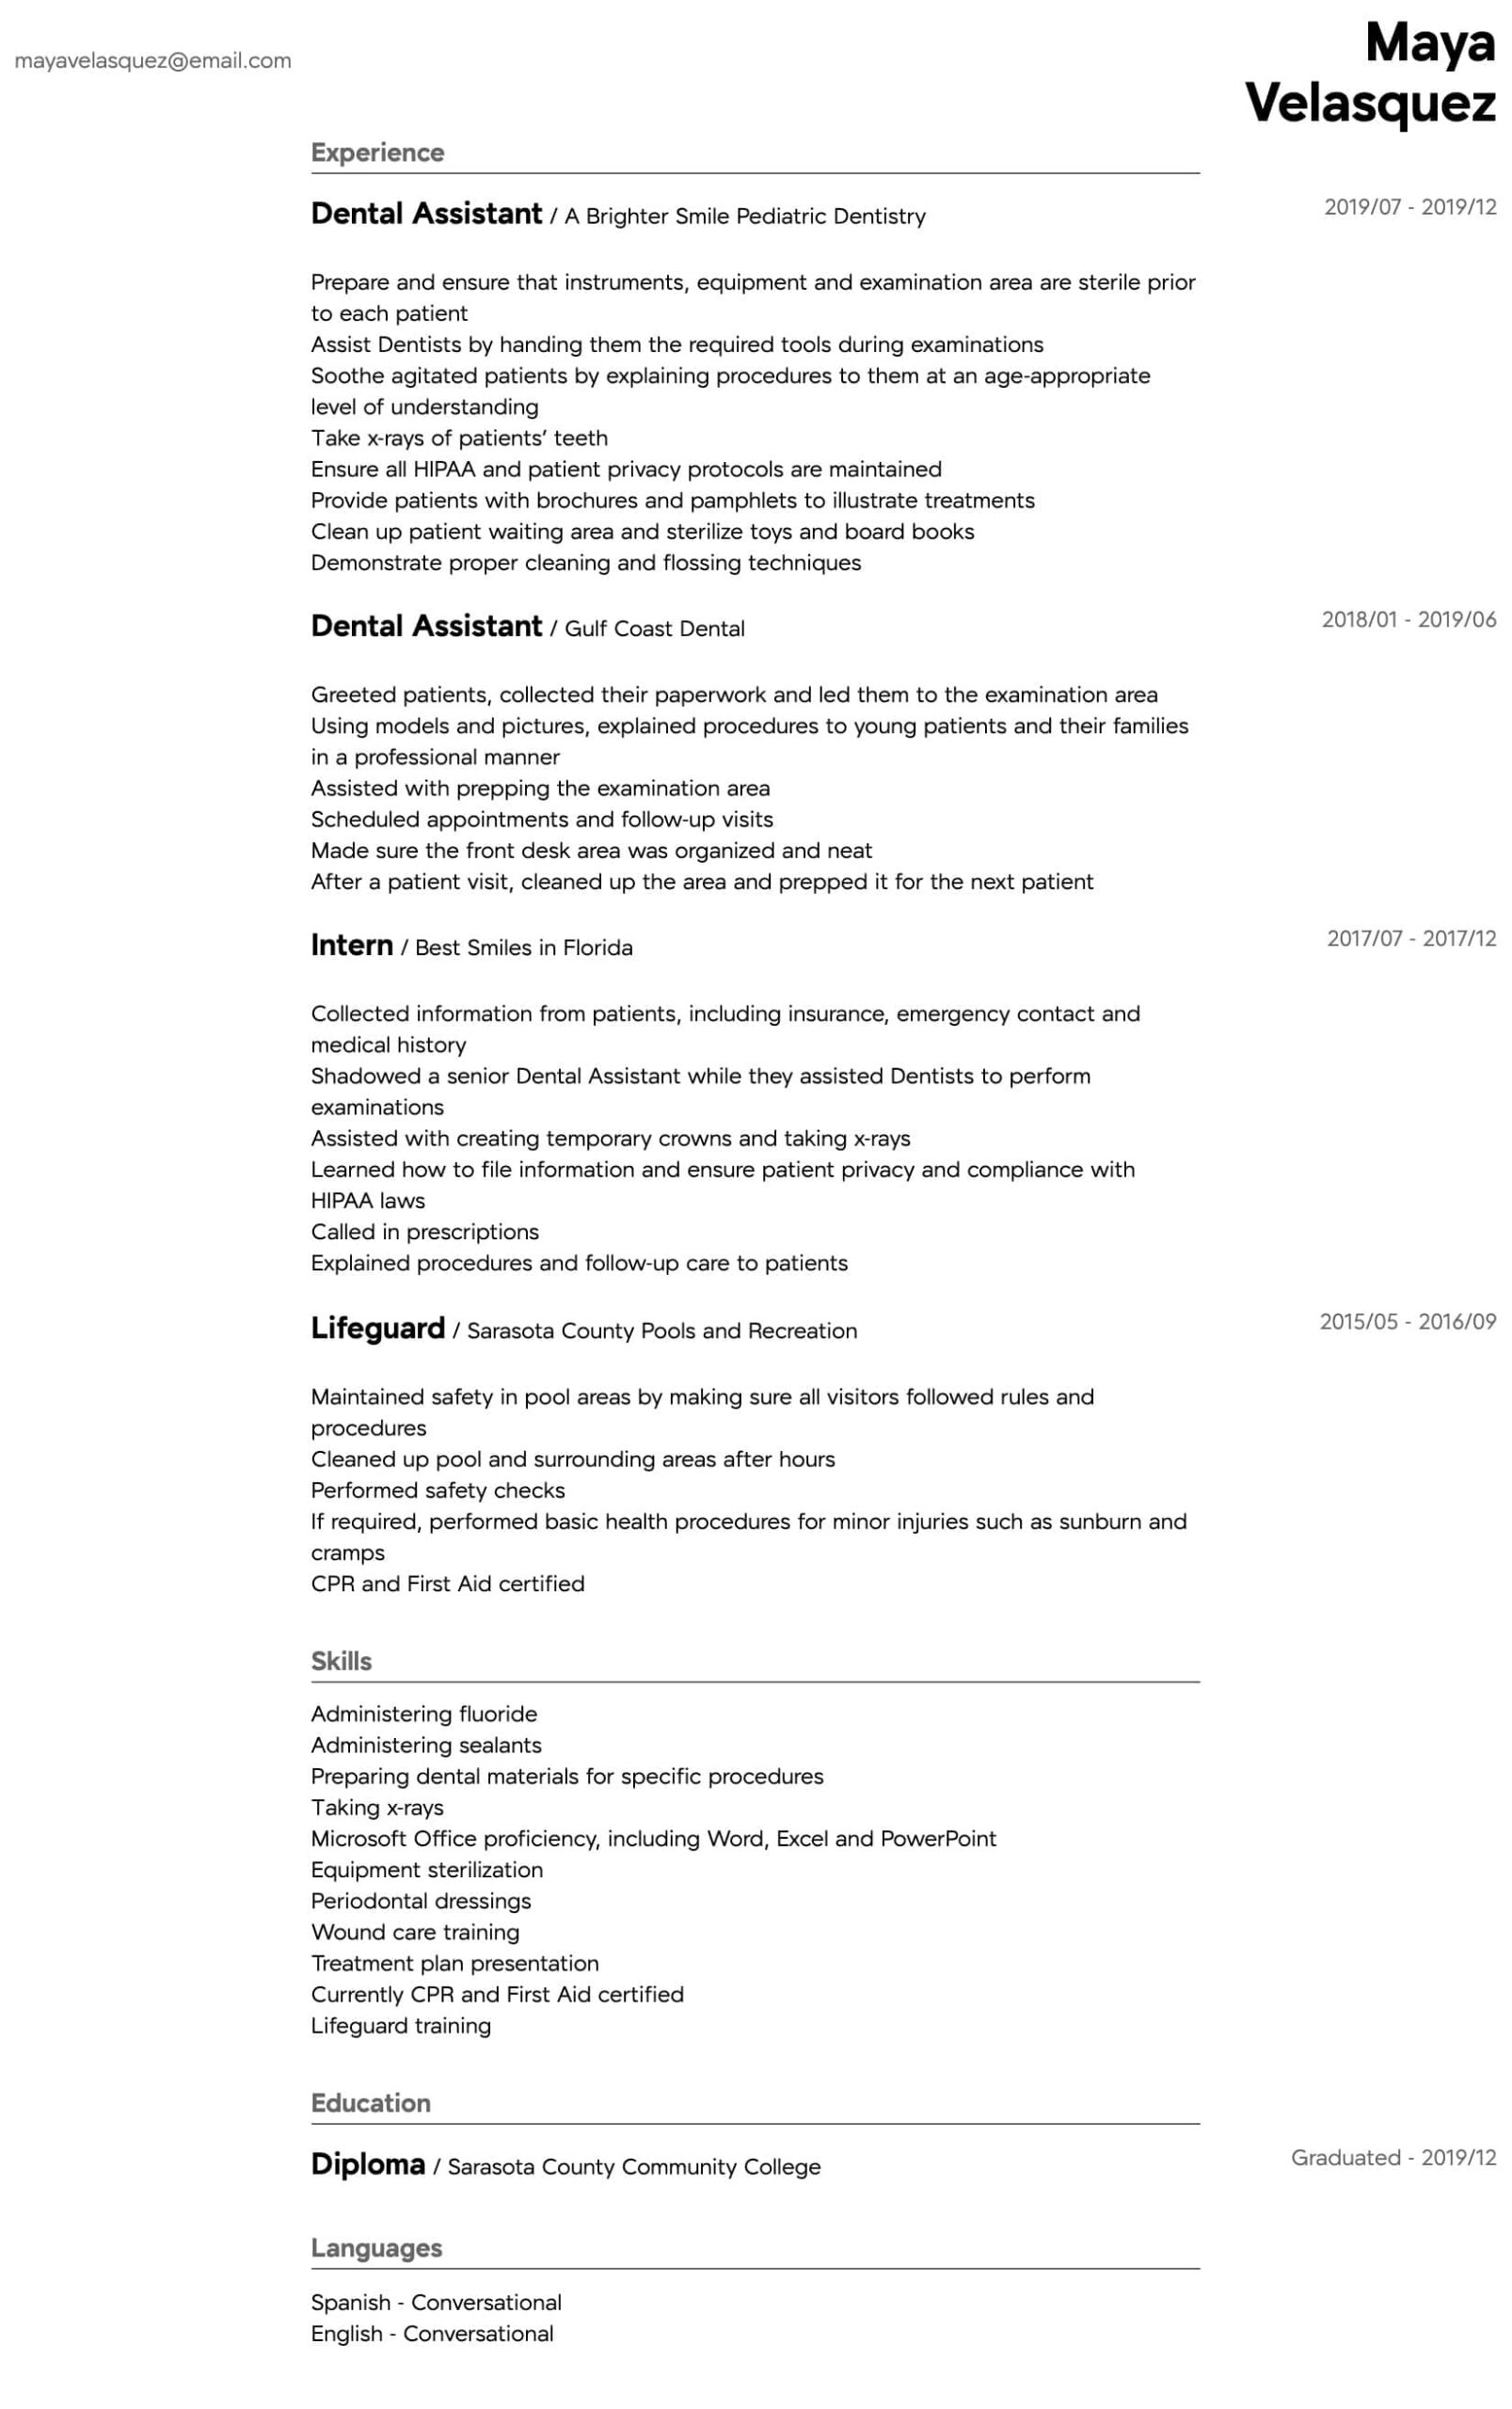 dental assistant resume samples all experience levels examples with no intermediate Resume Dental Assistant Resume Examples With No Experience